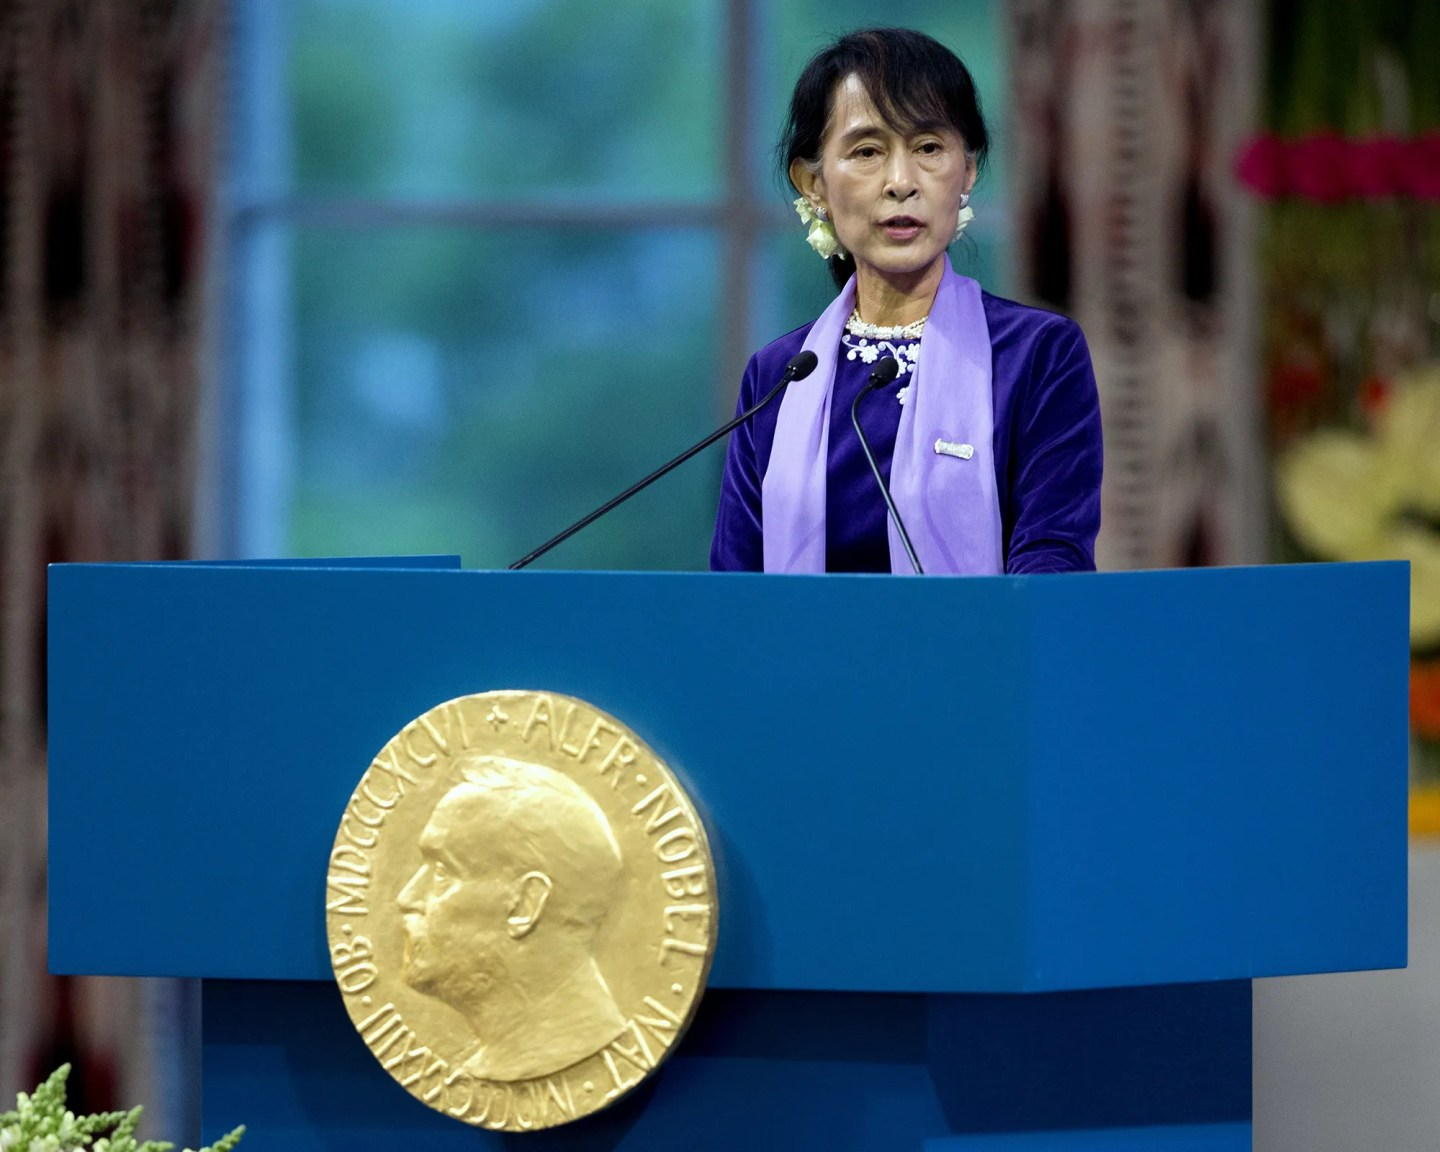 Nobel Peace Prize laureate, Myanmar opposition leader Aung San Suu Kyi gave her Nobel lecture in Oslo on June 16, 2012.